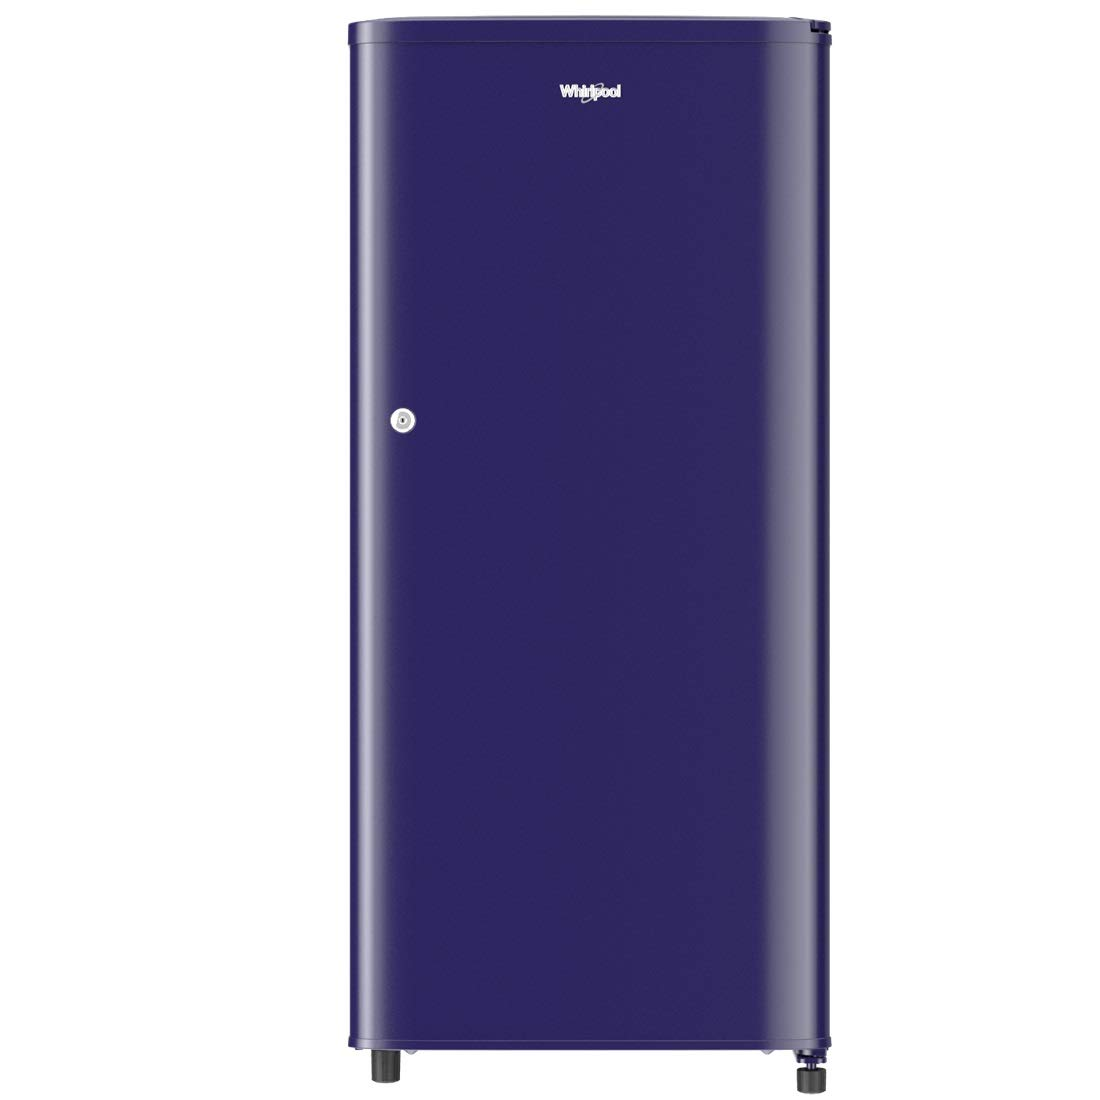 Whirlpool 190 L 2 Star Direct-Cool Single Door Refrigerator